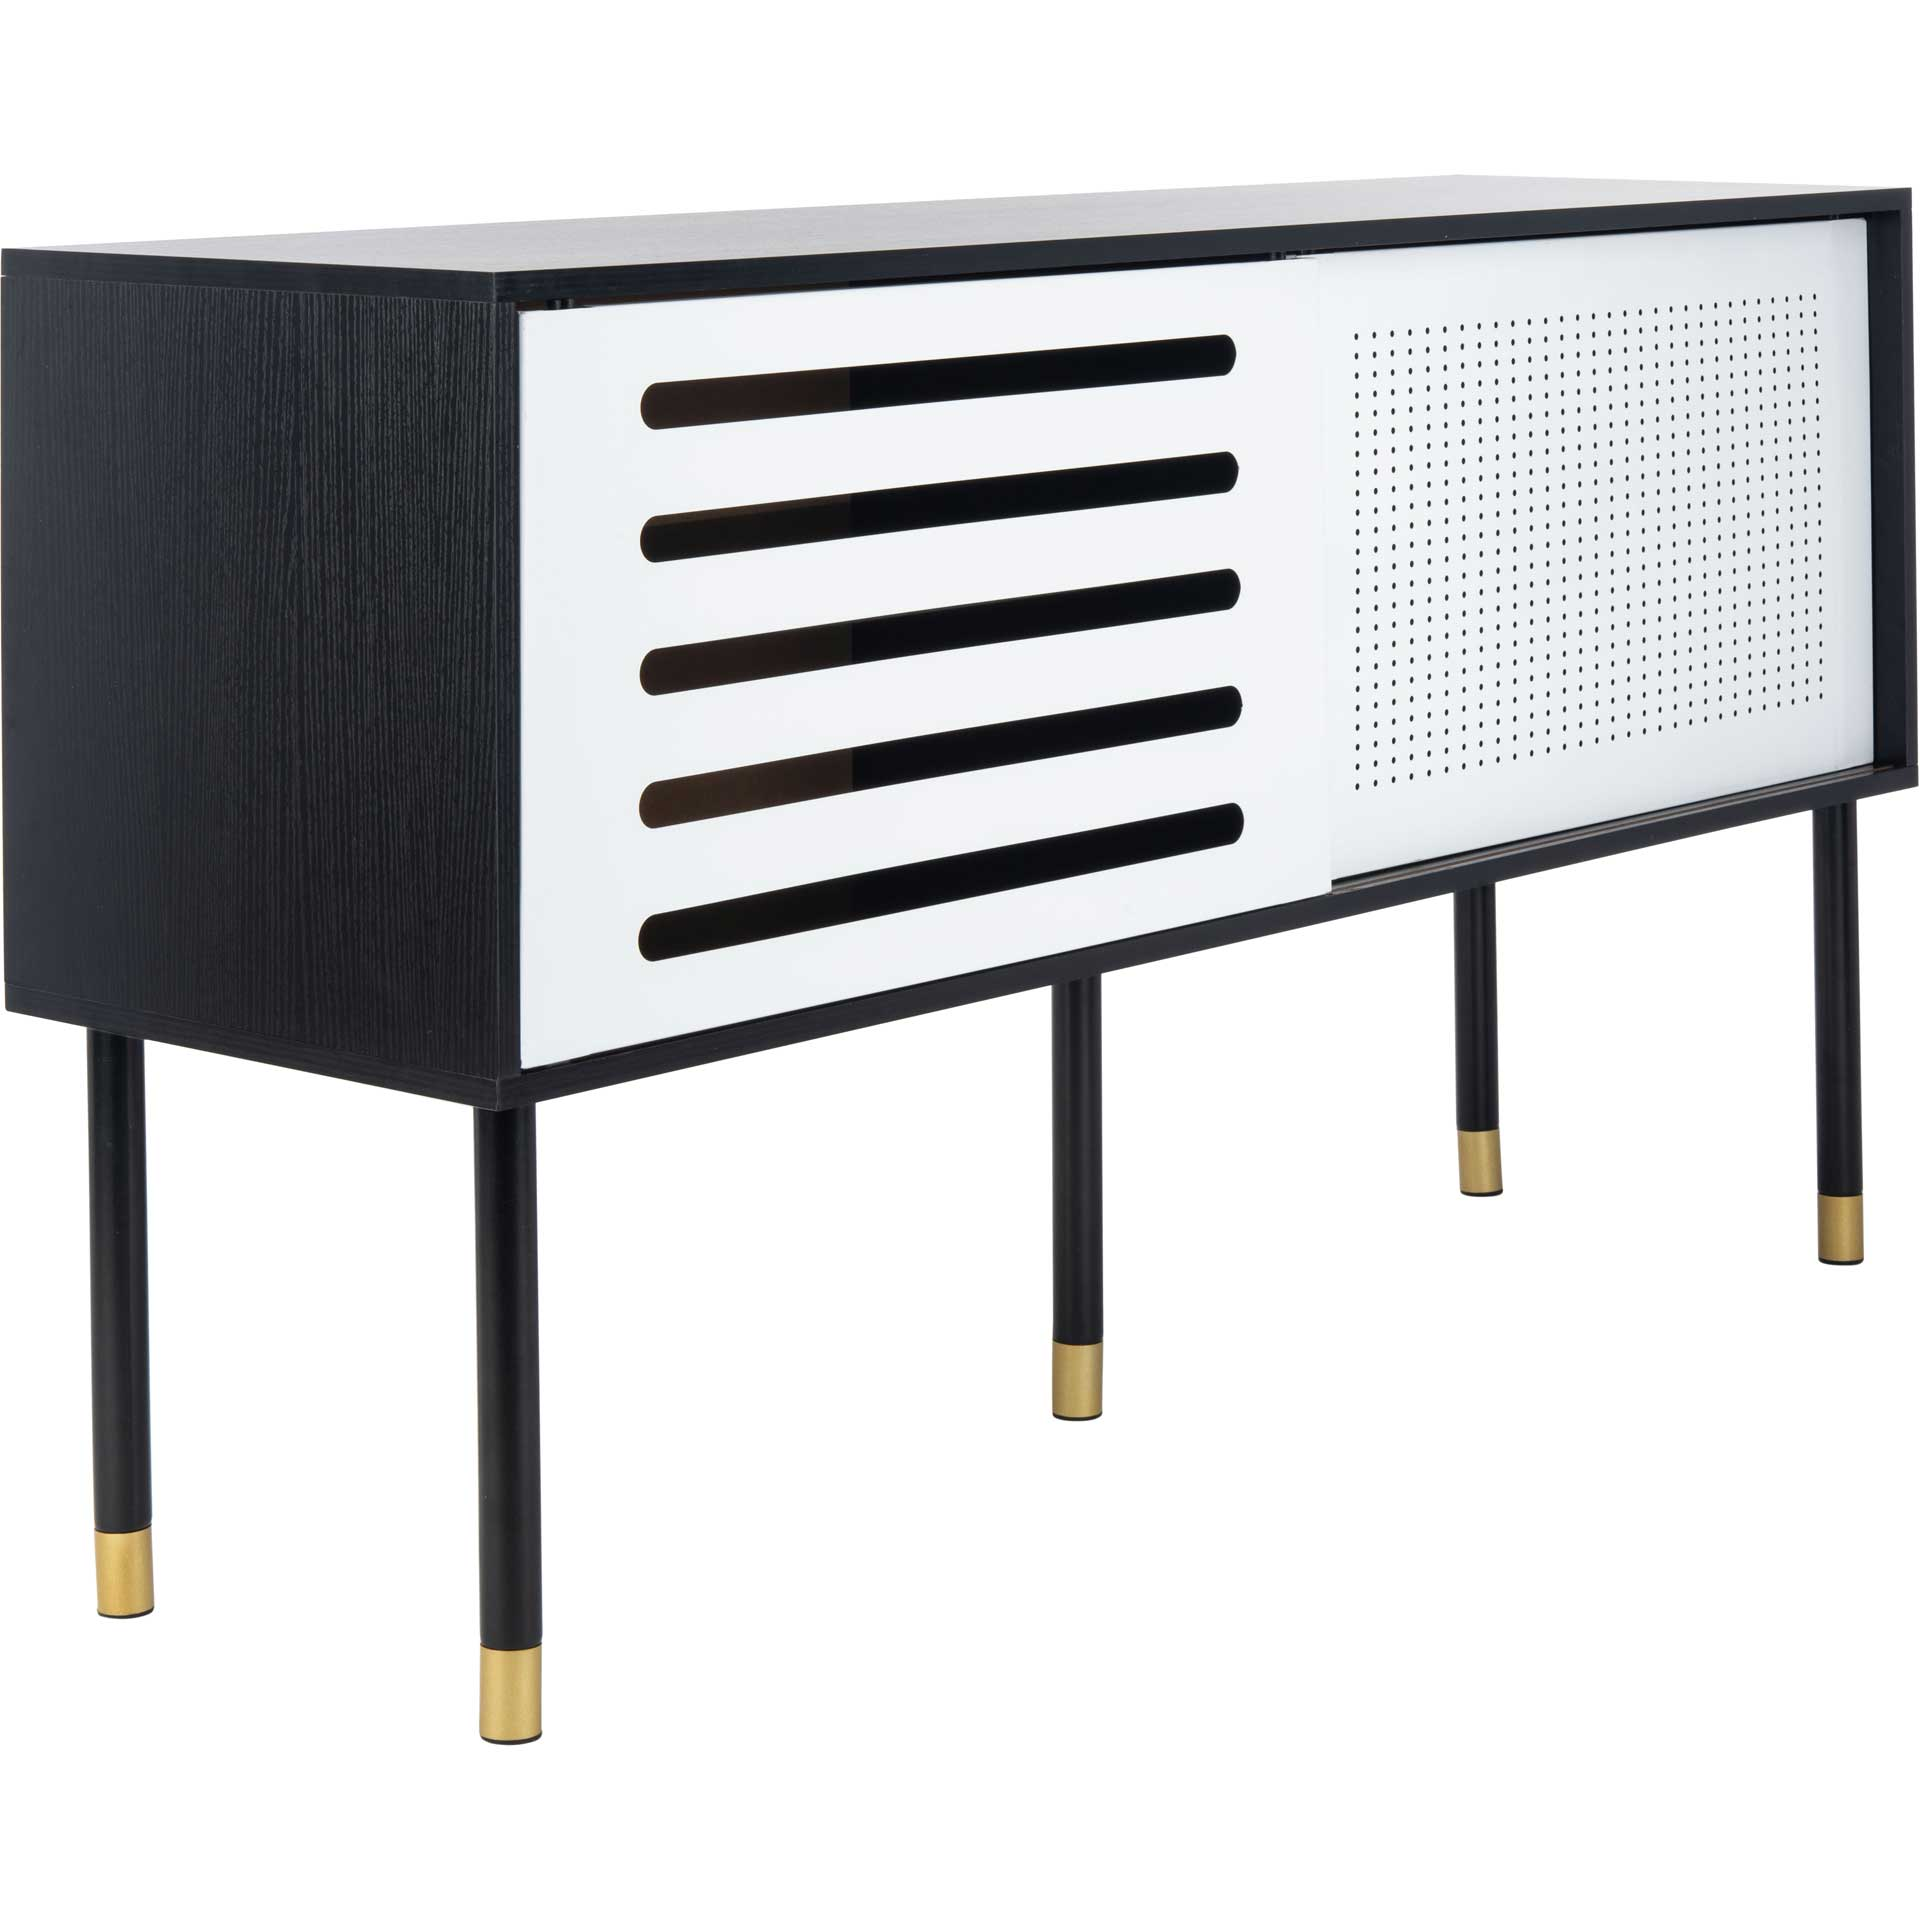 Shanara TV Stand Black/White/Gold